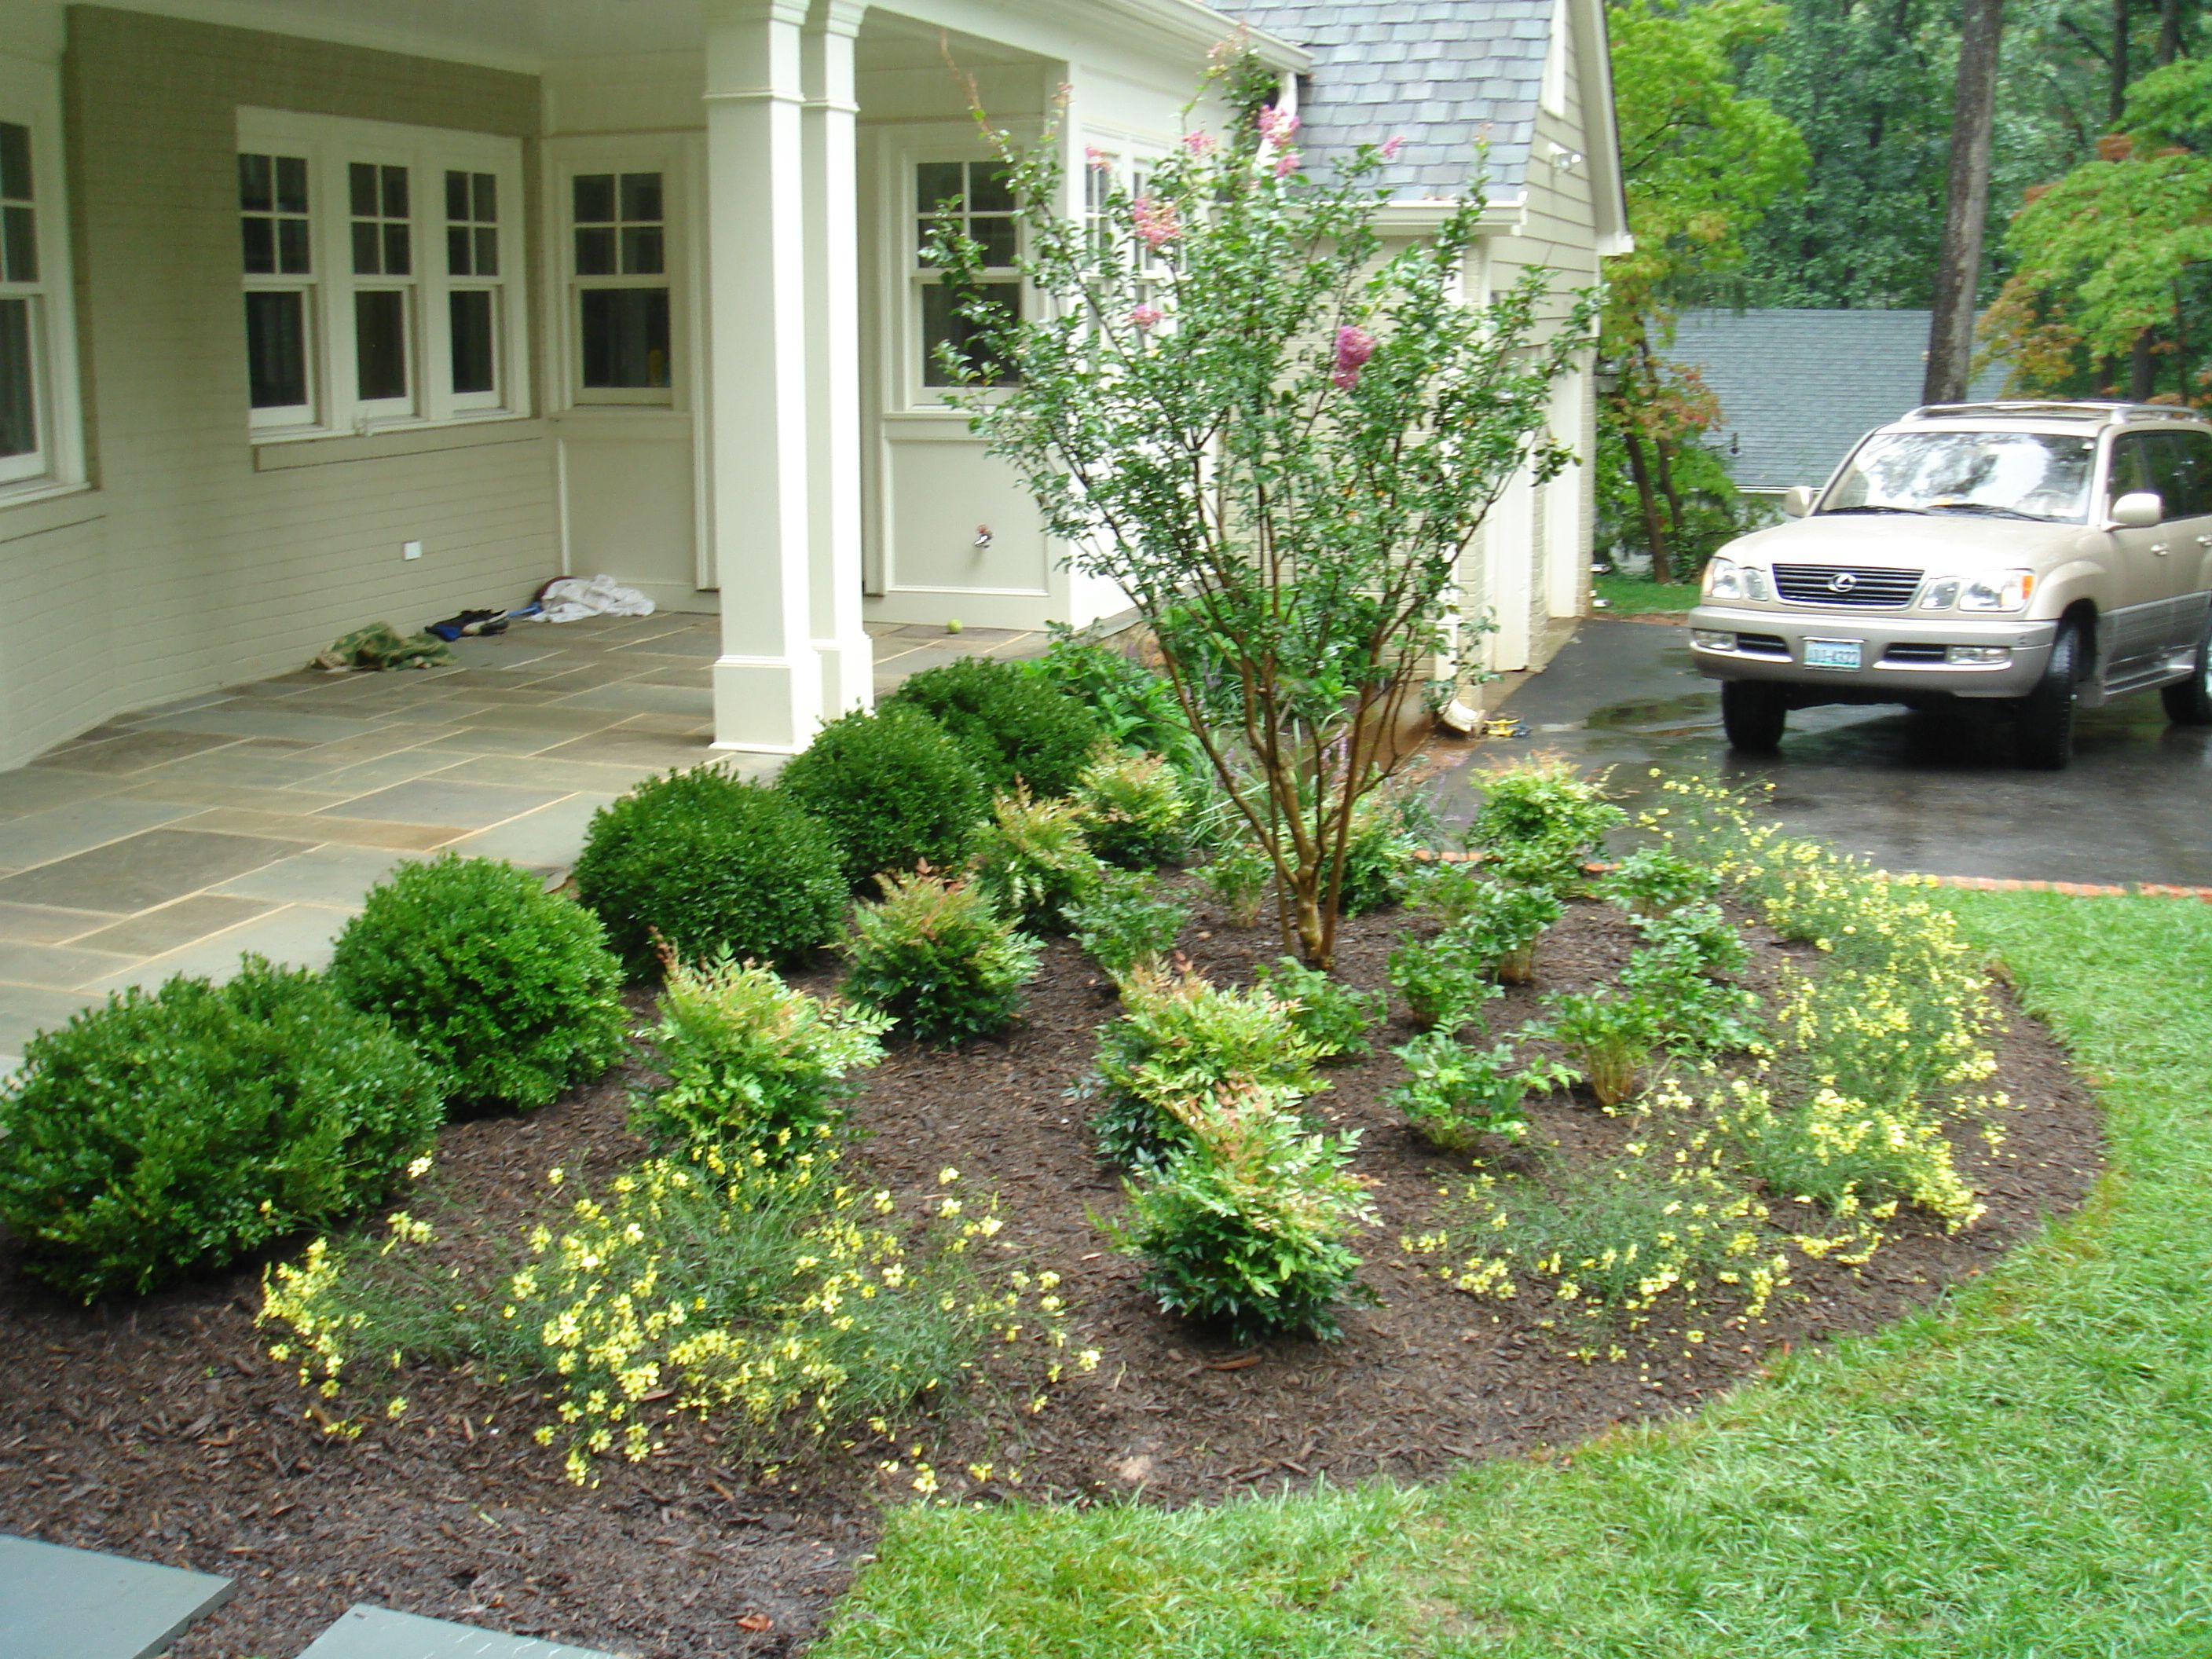 Front house garden plan ideas - Front Of House Small Backyard Landscape Ideas Front Yard Landscaping Landscape Small Front Yard